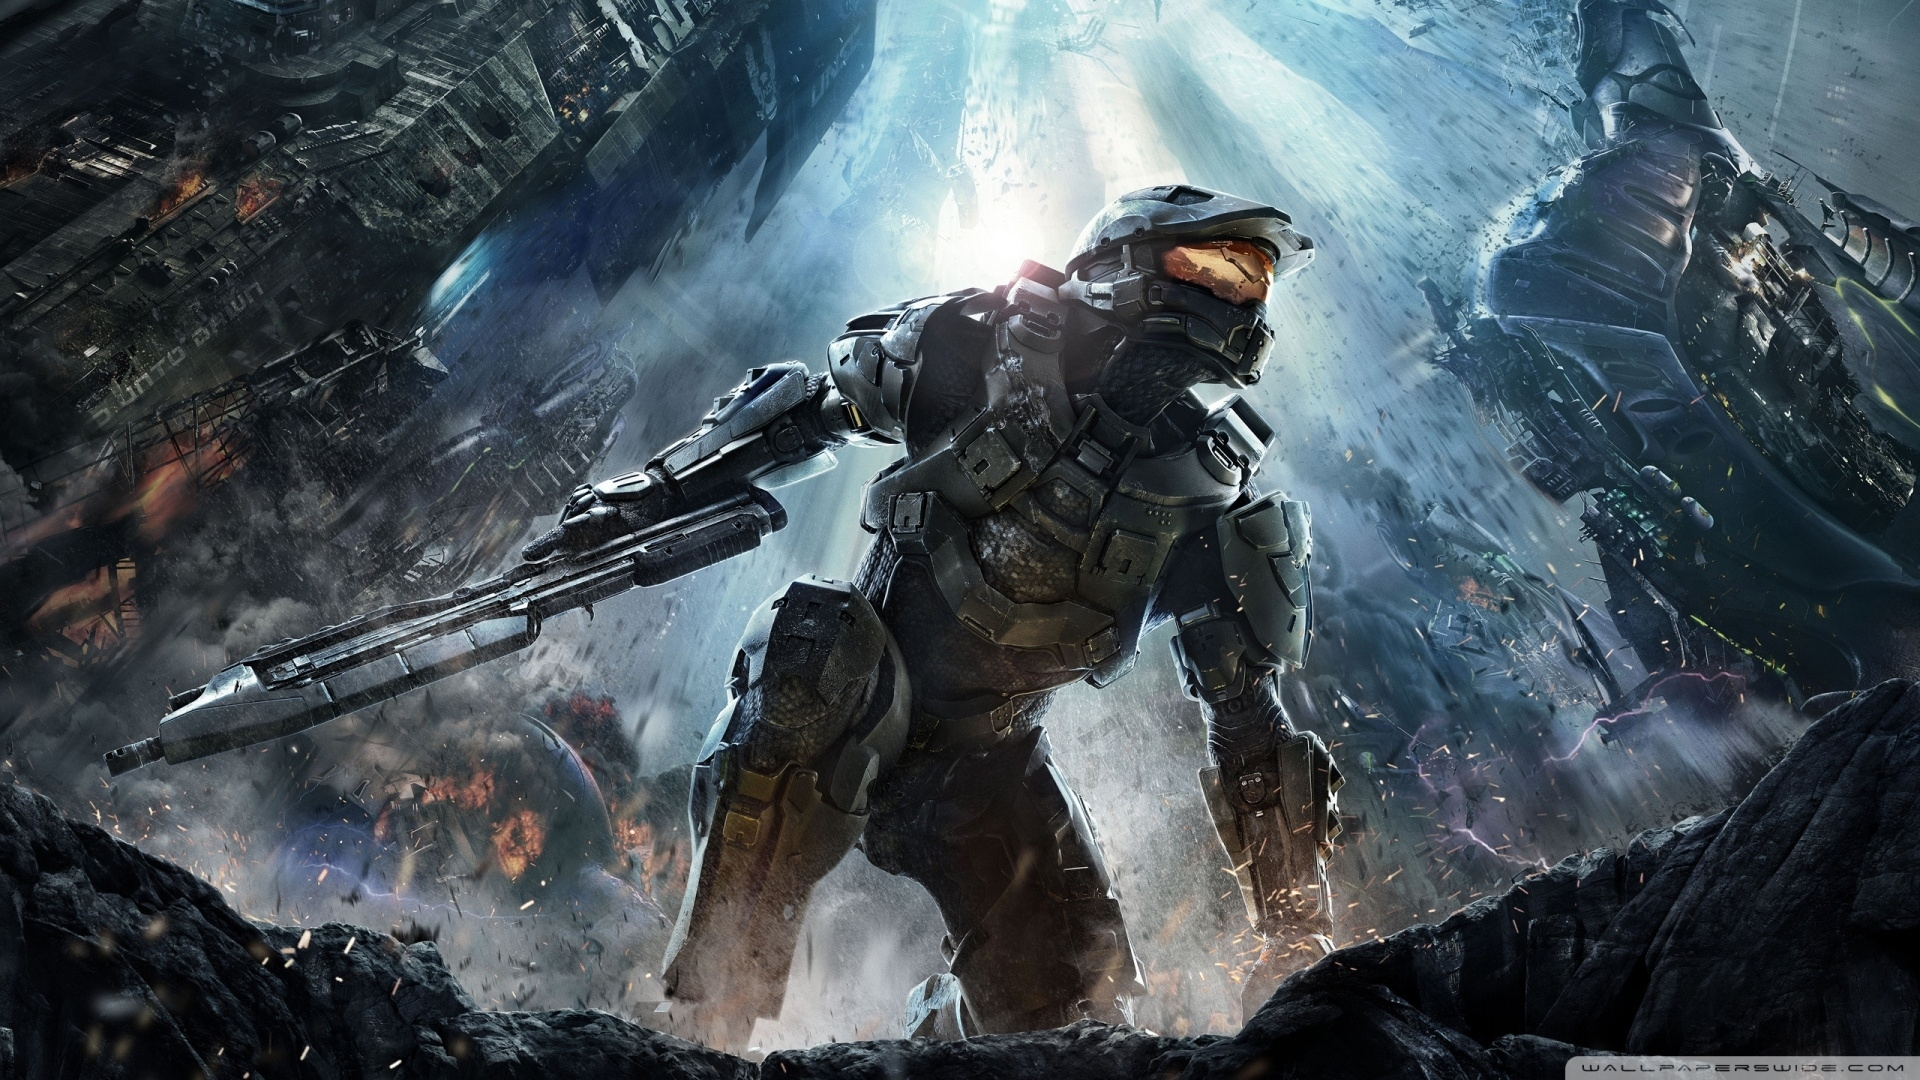 halo - wallpaper 1920x1080 hd #20568 wallpaper | game wallpapers hd